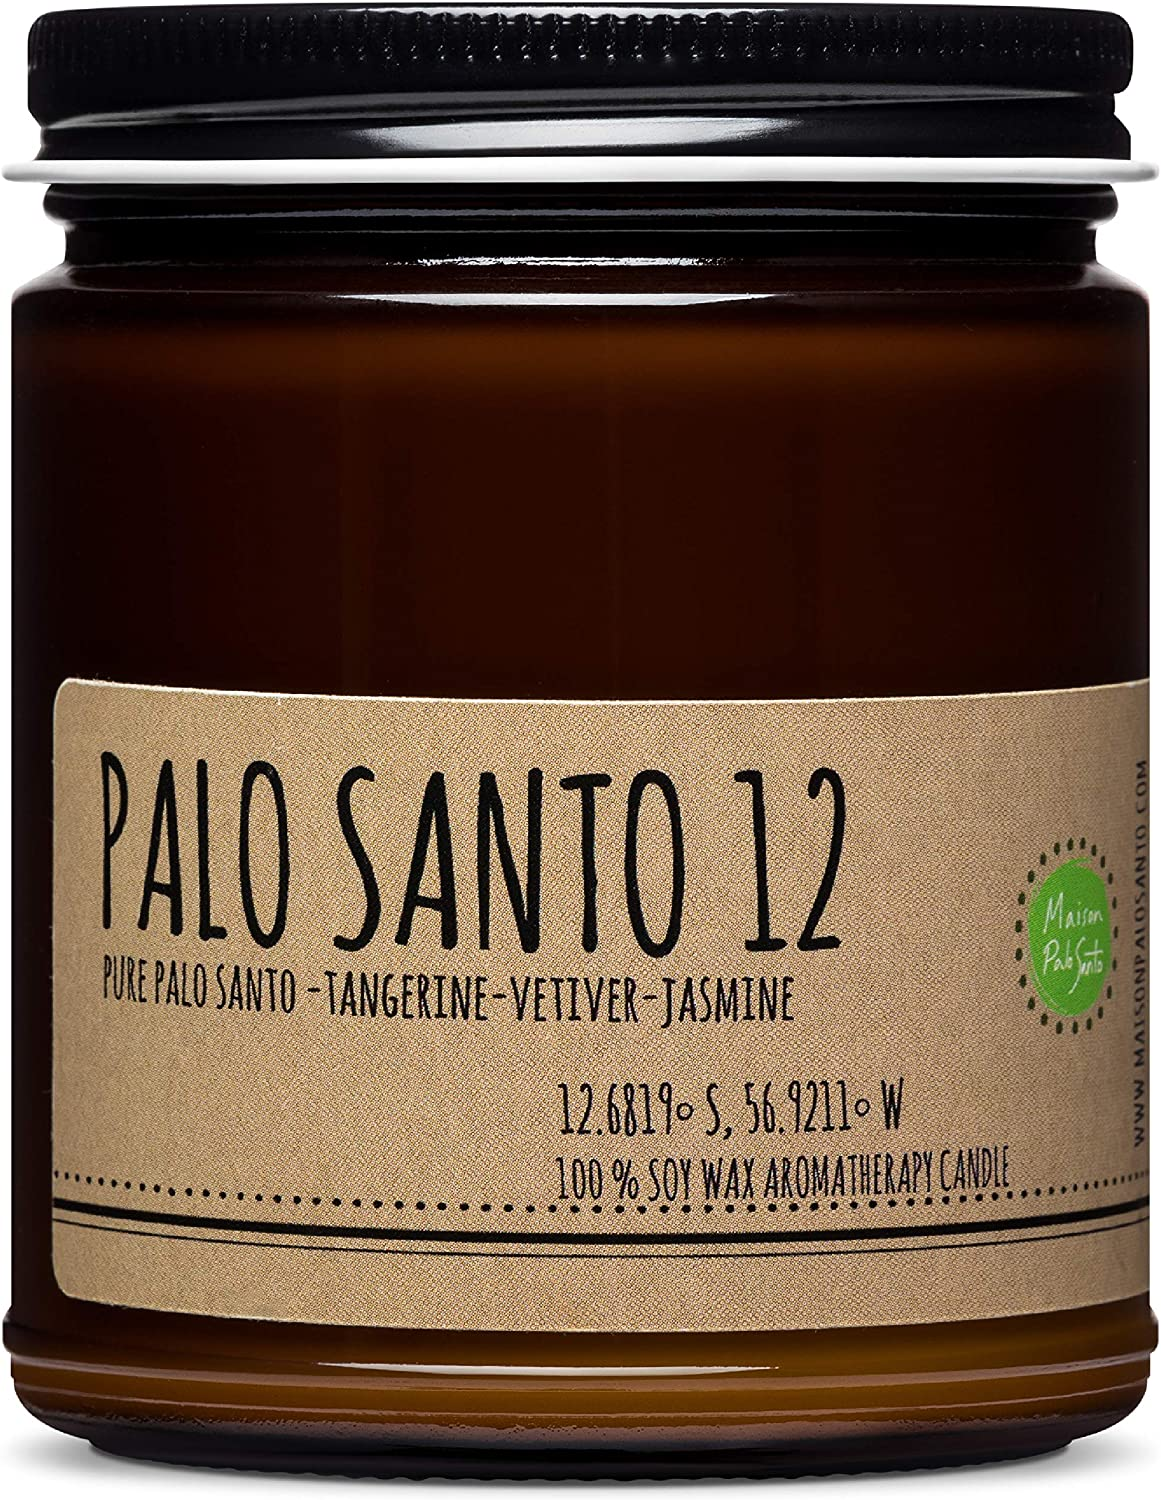 Maison Palo Santo Soy Wax Candle - Palo Santo, Tangerine, Vetiver and Jasmine Natural Scented Candle for Aromatherapy, Negative Energy Cleansing, Chakra Balancing and Meditation, 9 oz